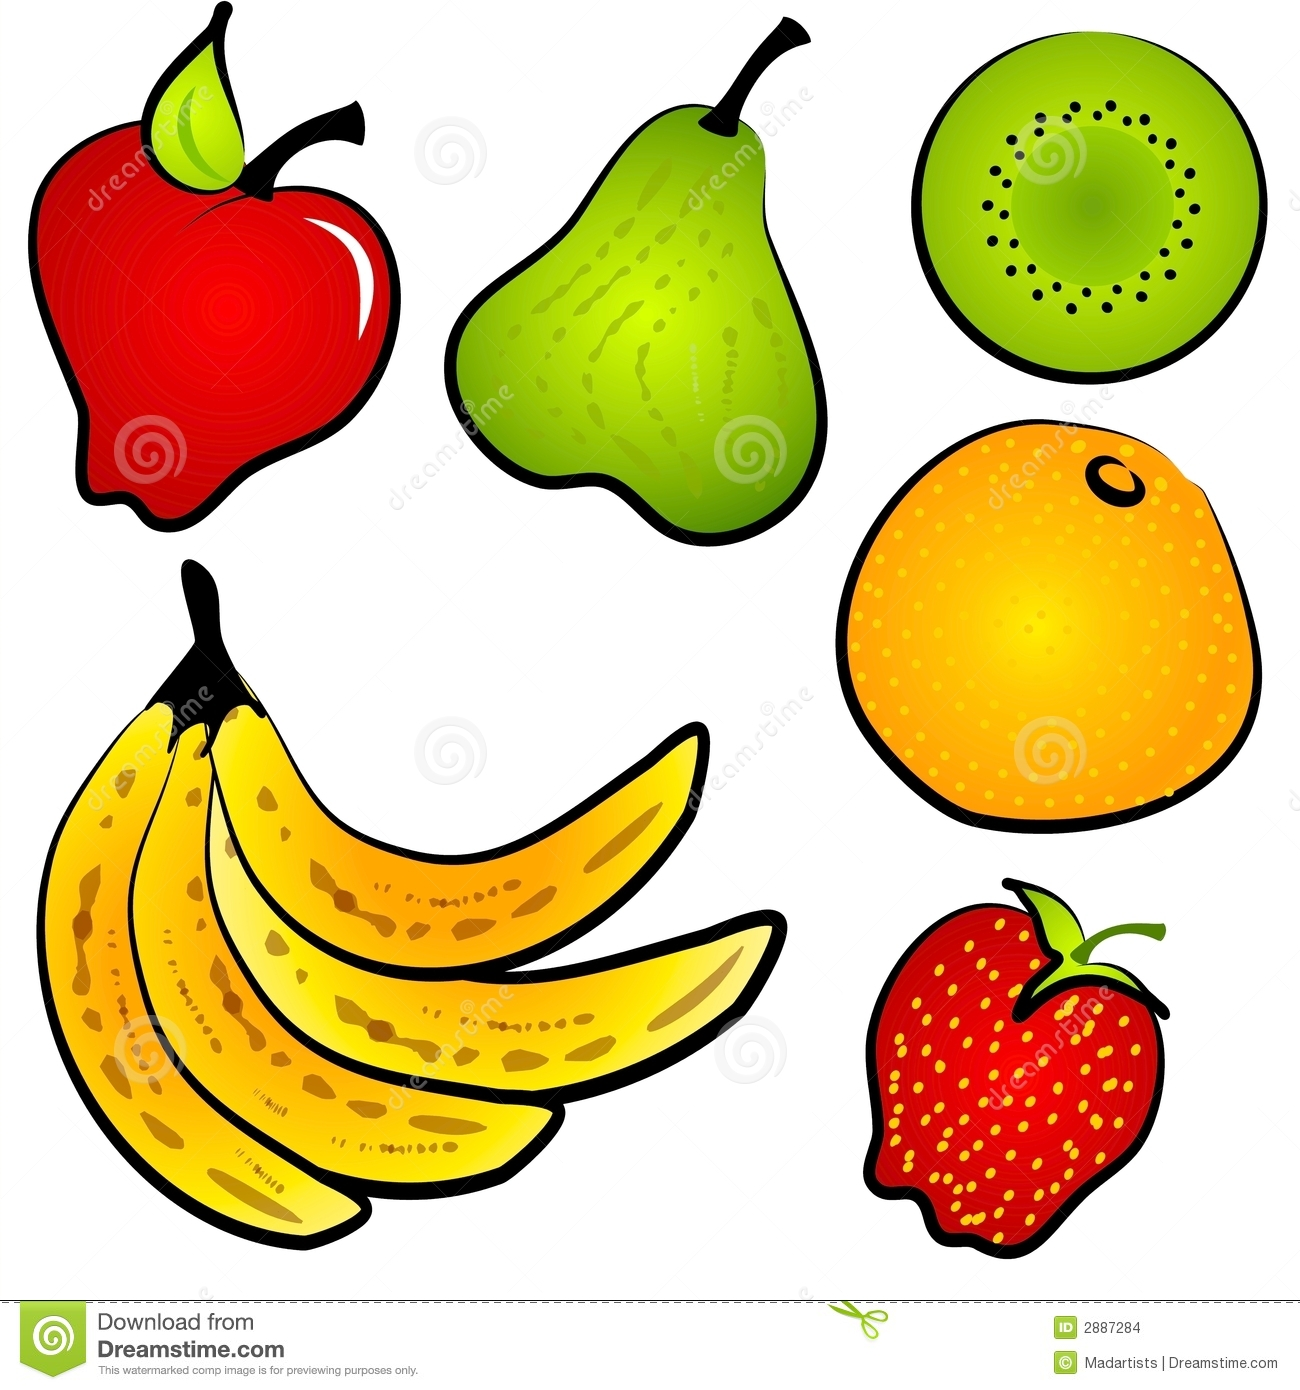 Banana clipart healthy snack Health – Stock Illustrations collection